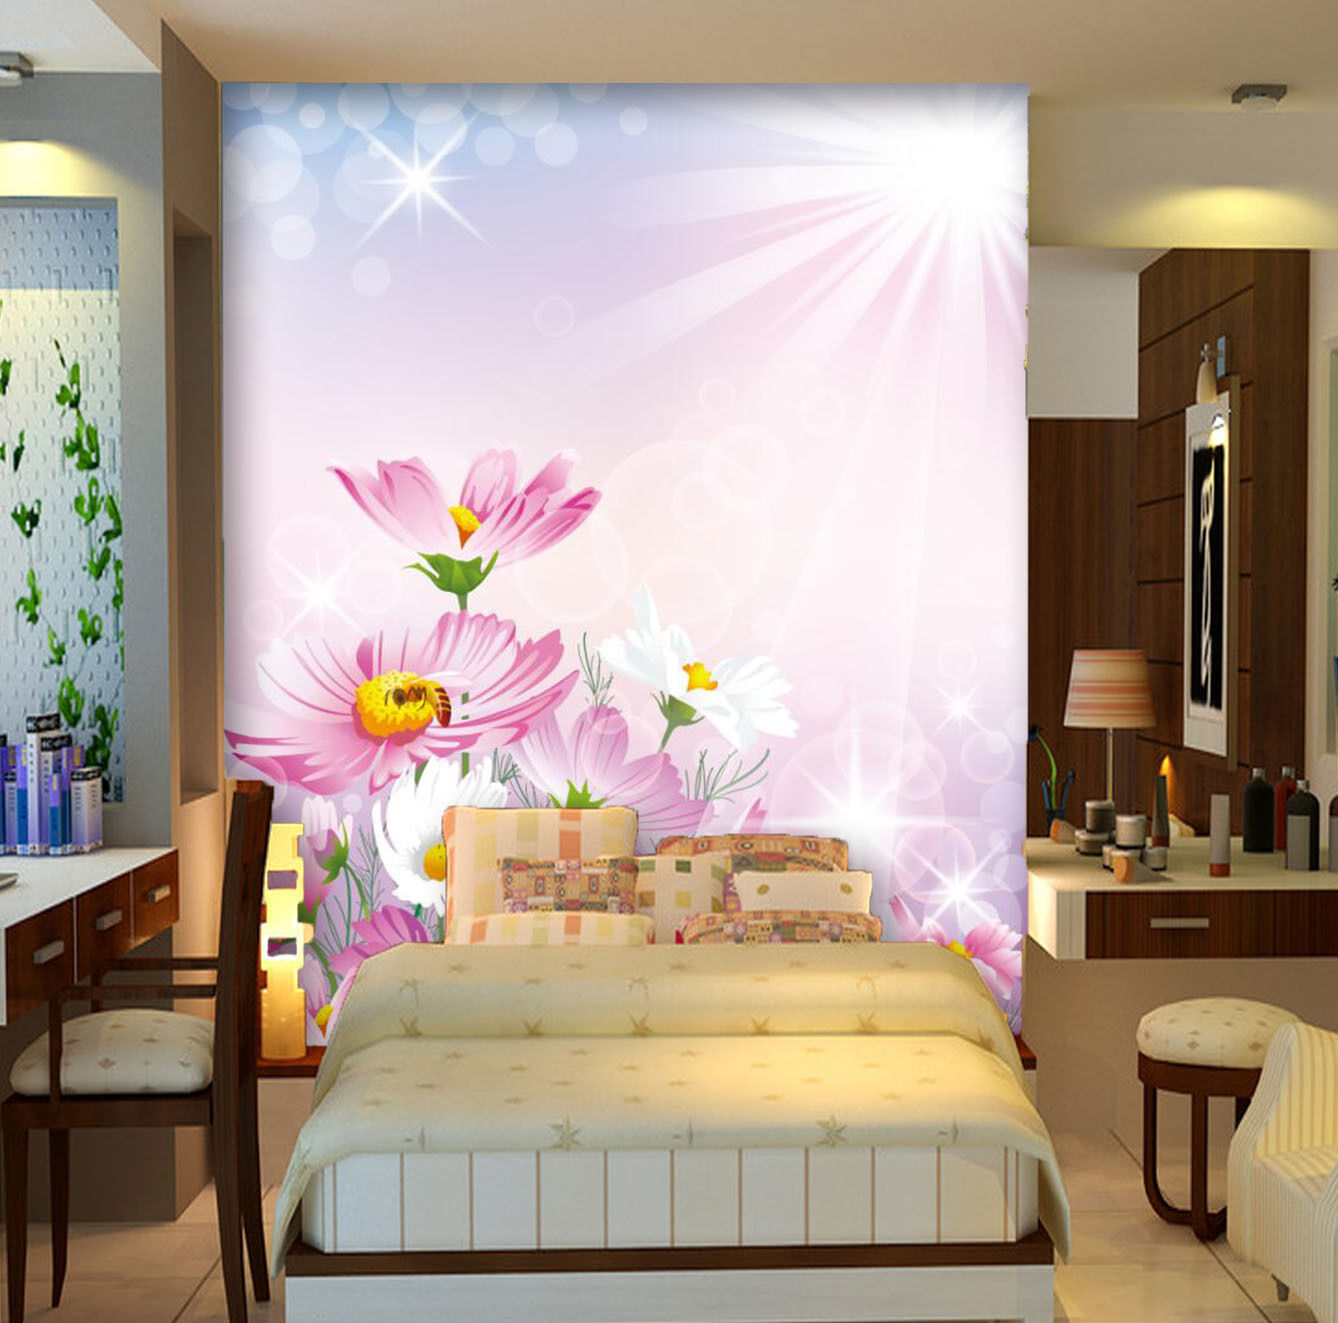 3D Flowers And Sunbeams 2896 Paper Wall Print Wall Decal Wall Deco Indoor Murals